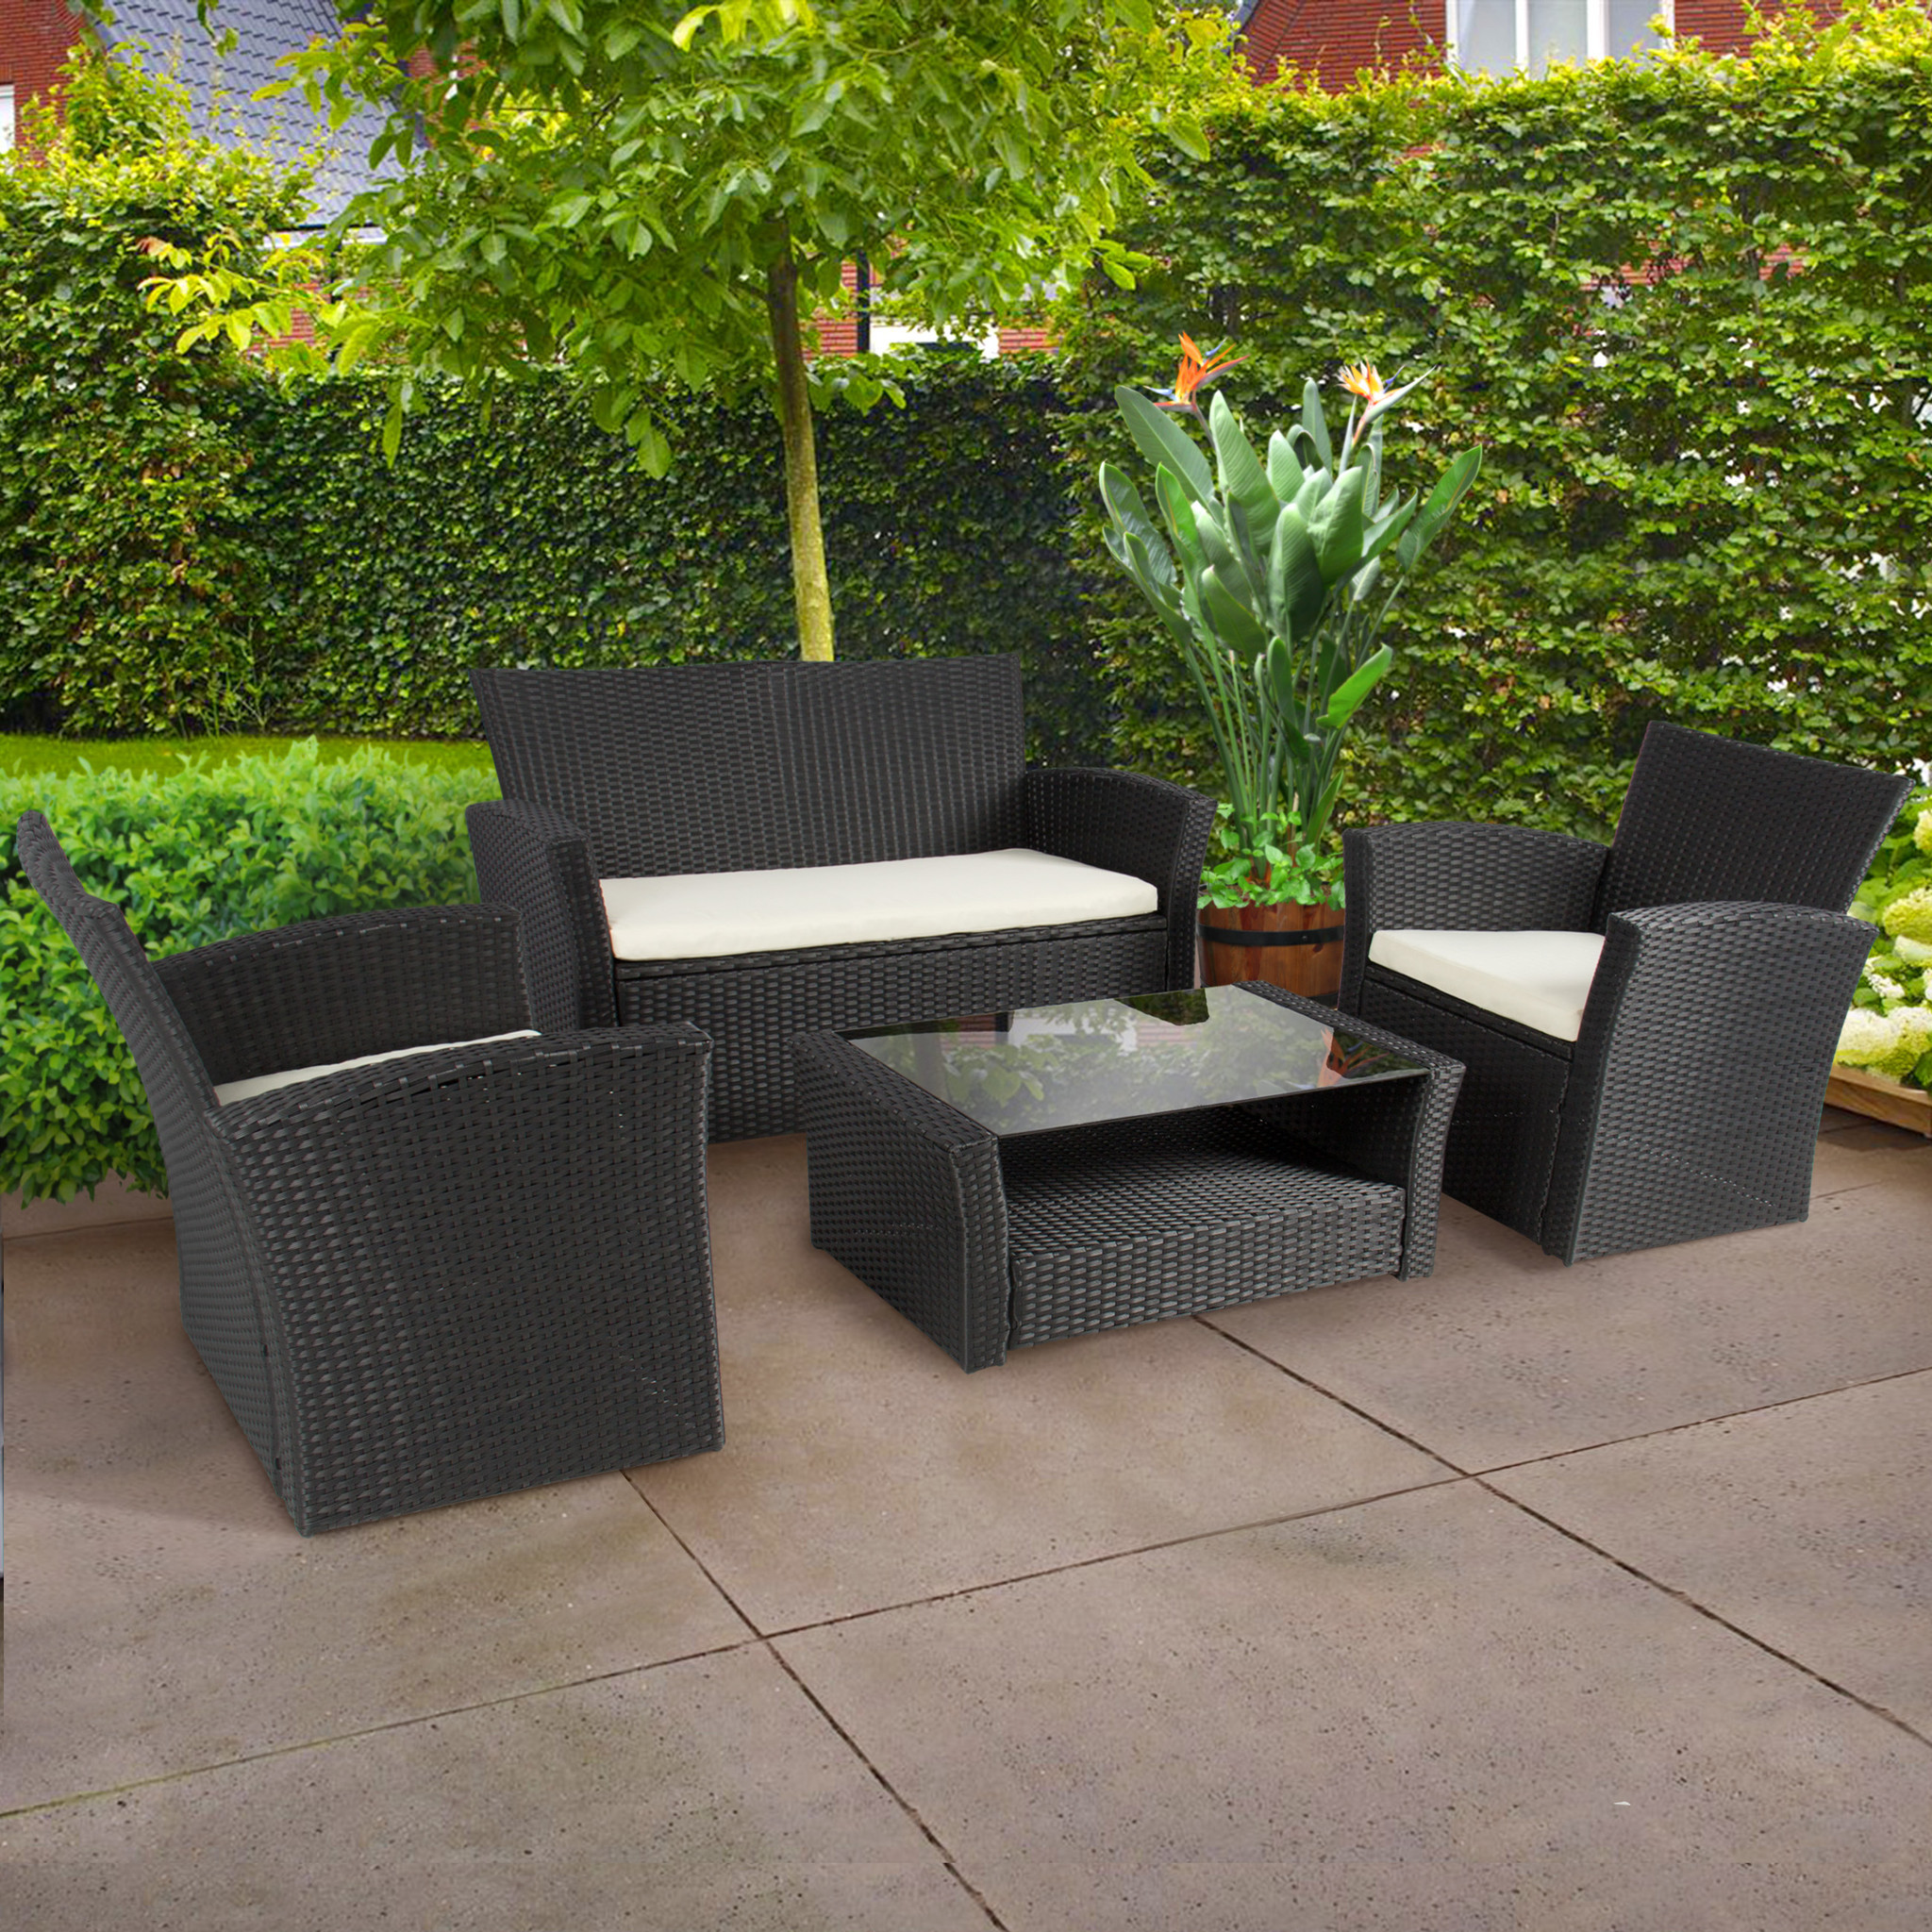 HOW TO SELECT THE BEST QUALITY PATIO FURNITURE FOR YOUR HOME